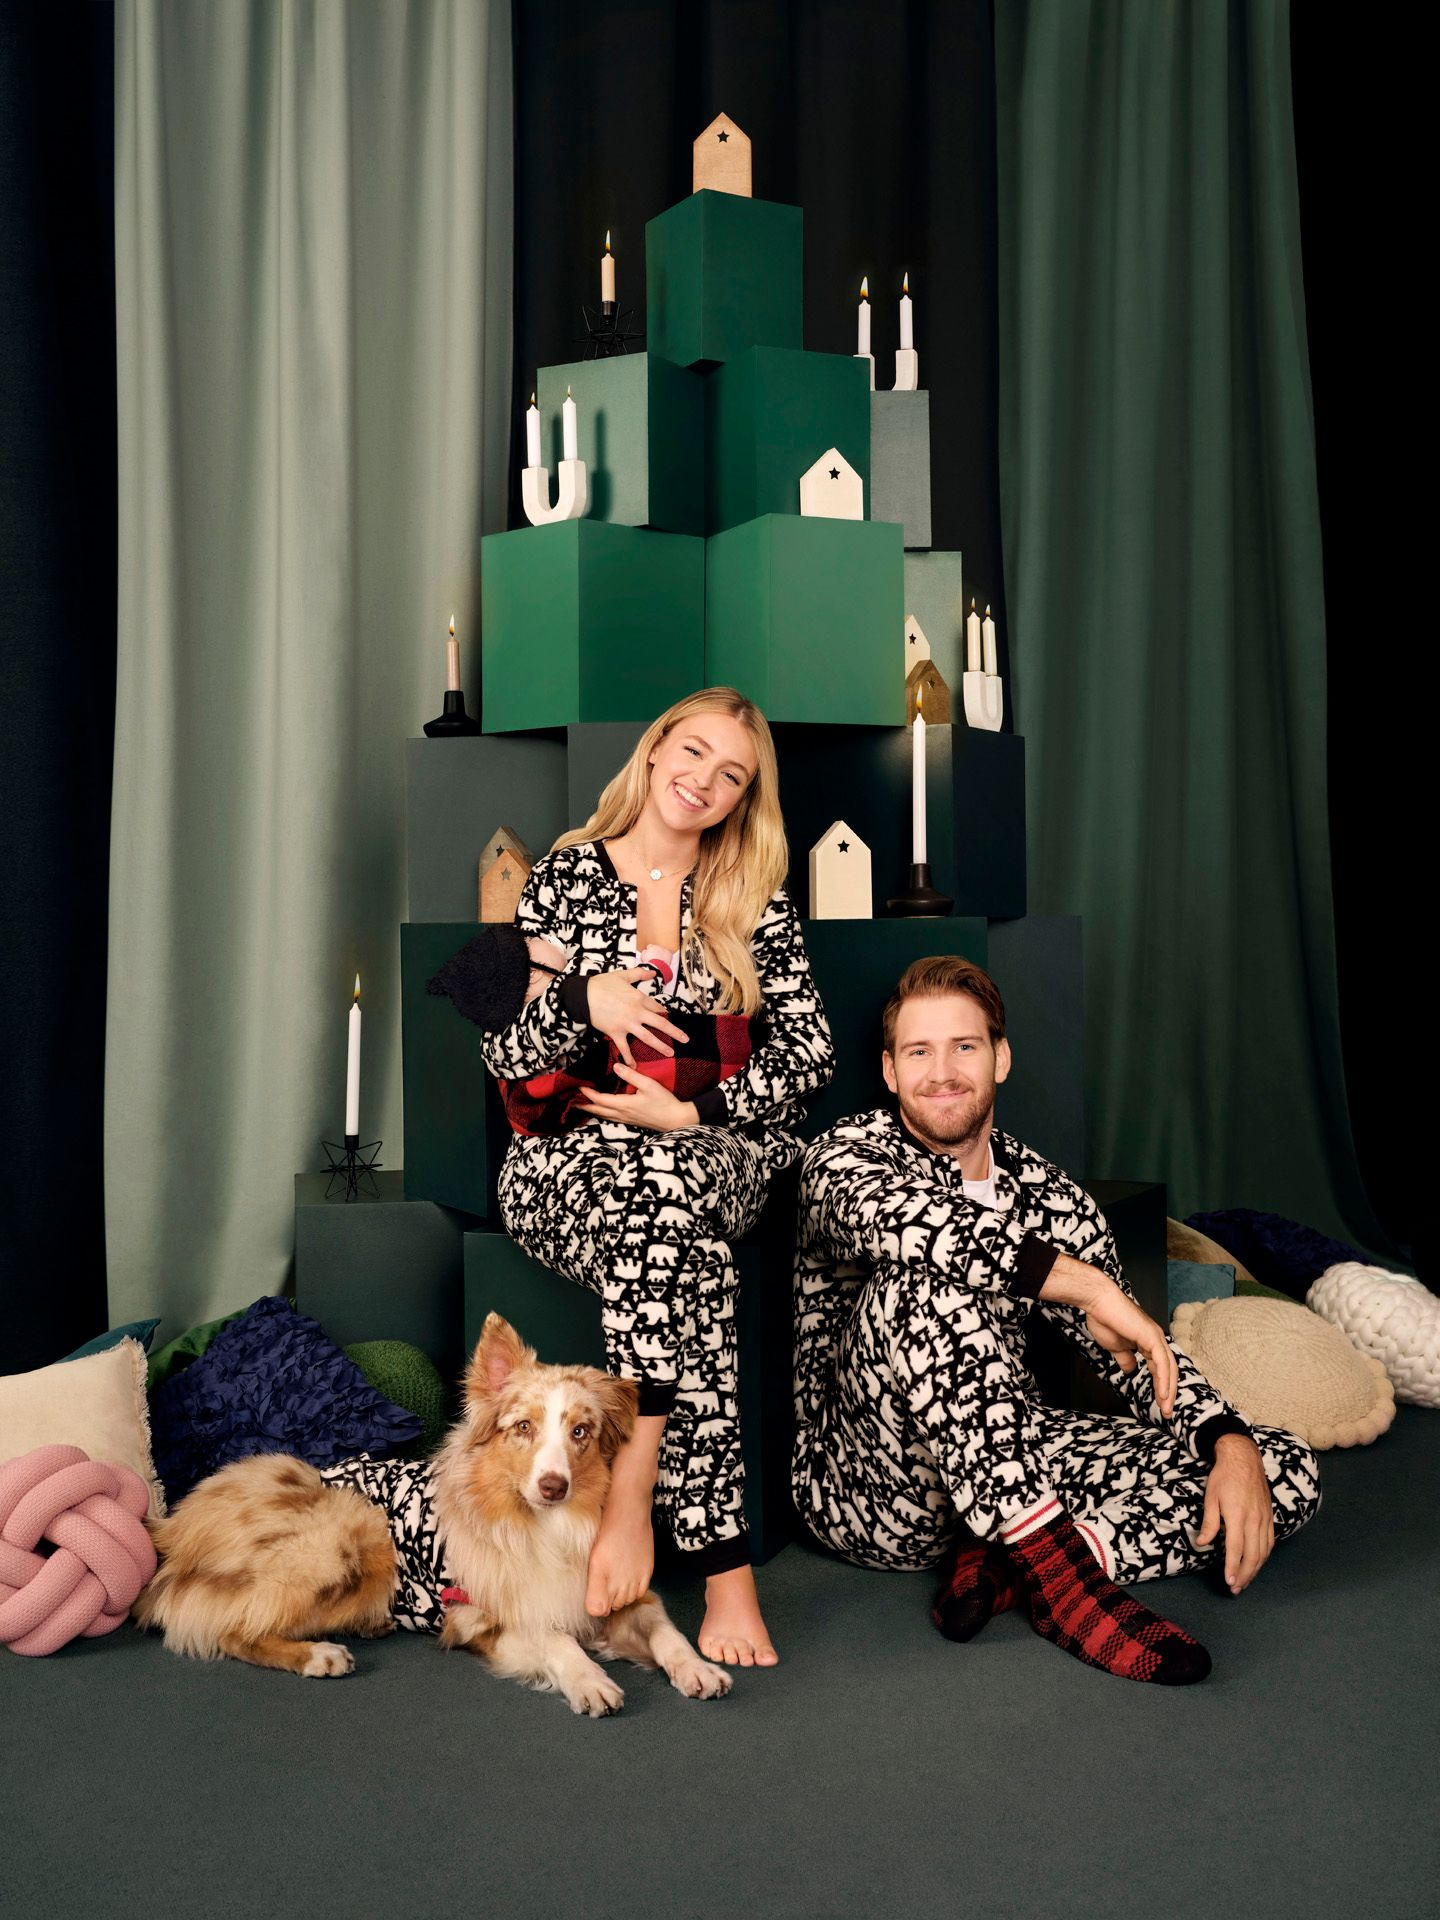 portrait of family of Alicia Moffatt in festive decor wearing matching pajamas with her husband newborn baby and dog for Aubainerie Christmas campaign about united family photographed and filmed by Maxyme G Delisle with artistic direction and set design by Studio TB